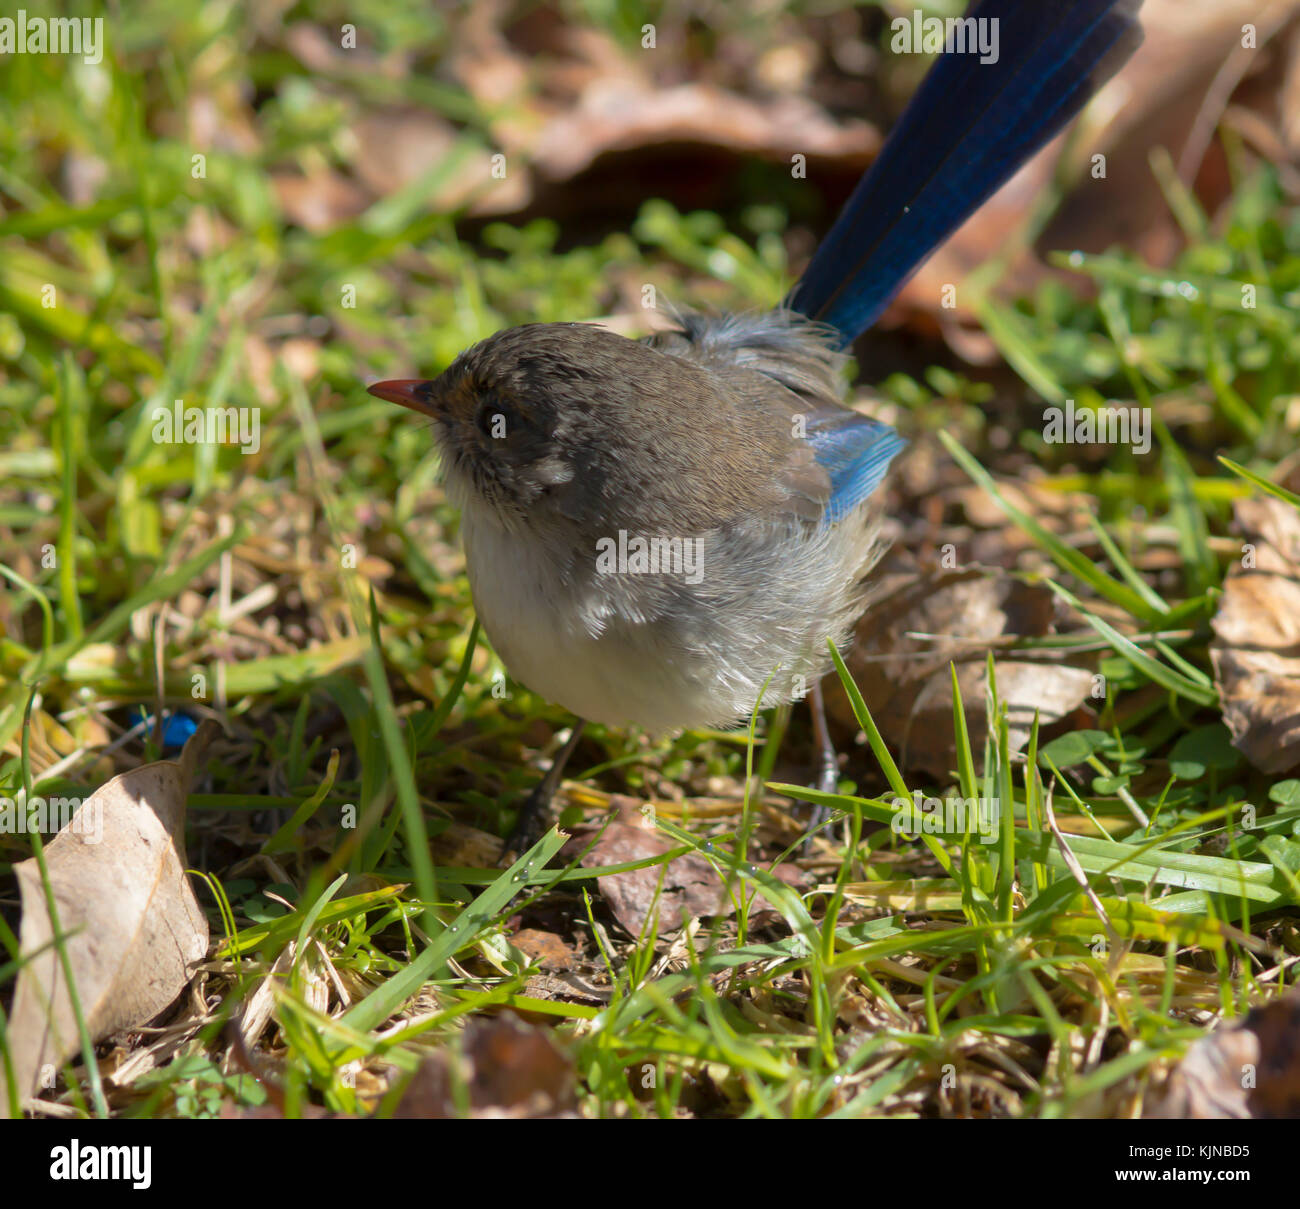 Female  Splendid Fairywren (Malurus splendens),  Splendid Wren or  Blue Wren in Western Australia  a passerine bird - Stock Image